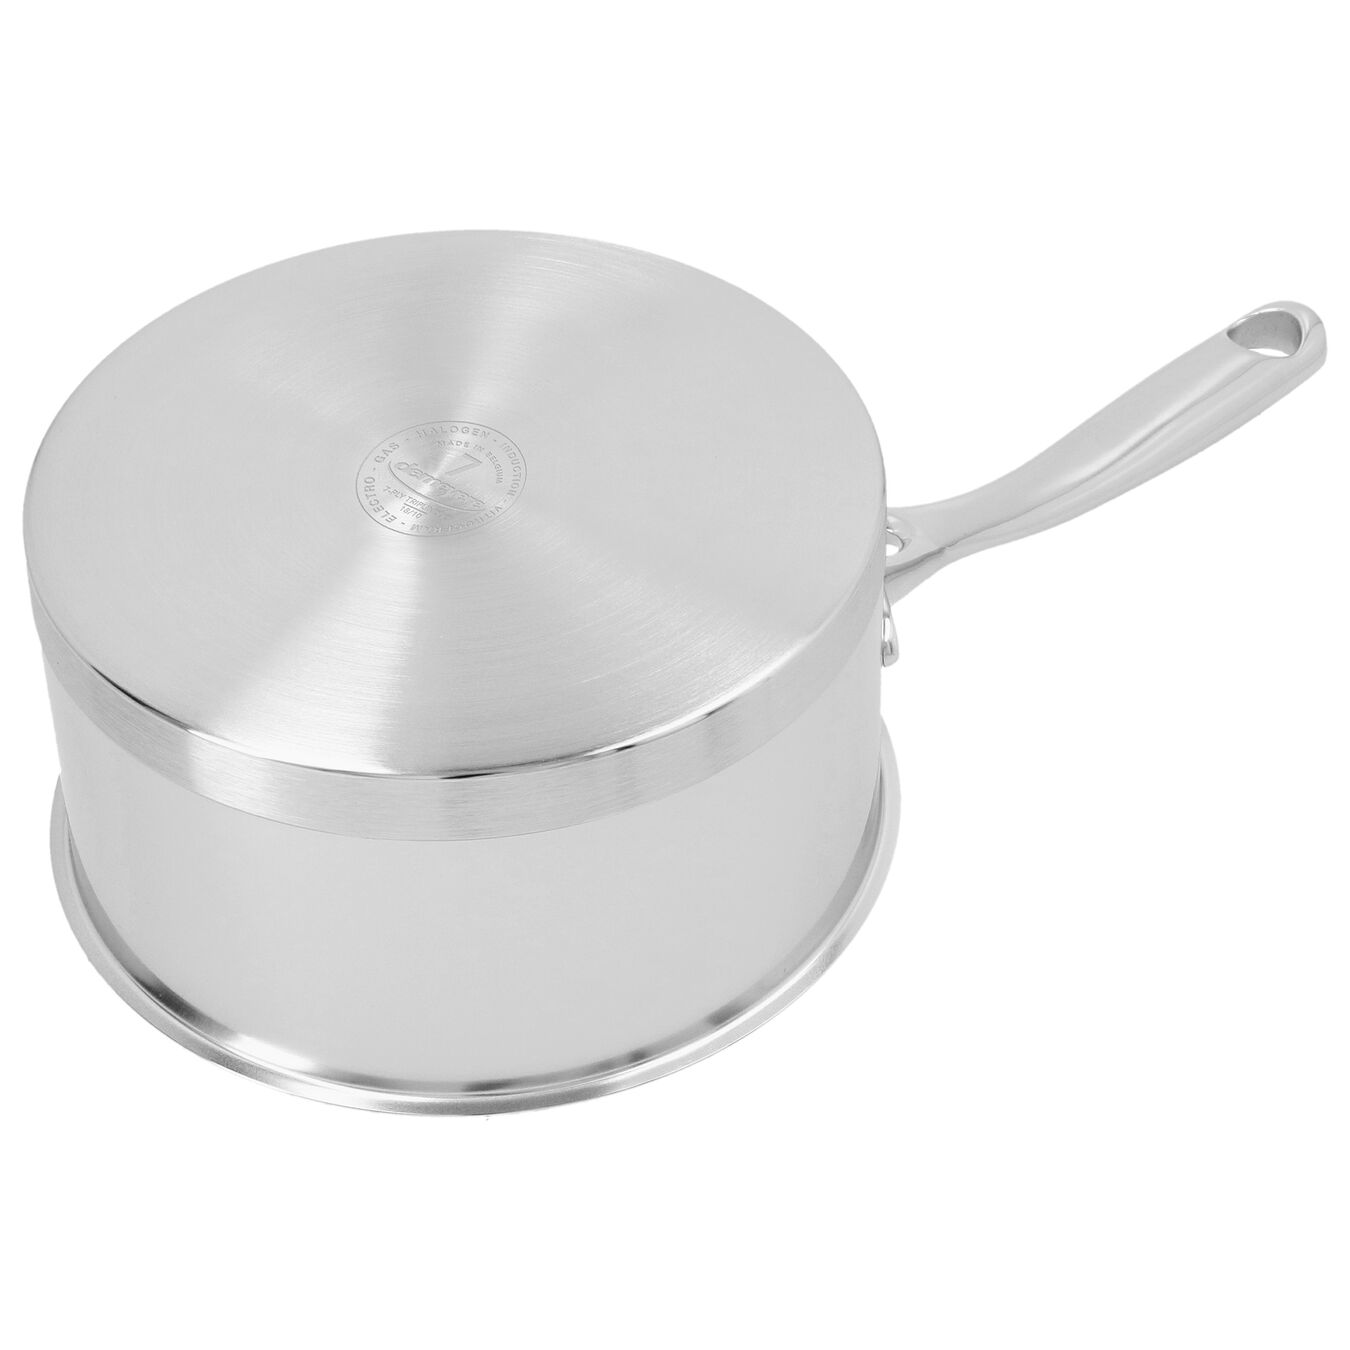 1.75 qt Sauce pan with lid, 18/10 Stainless Steel ,,large 4